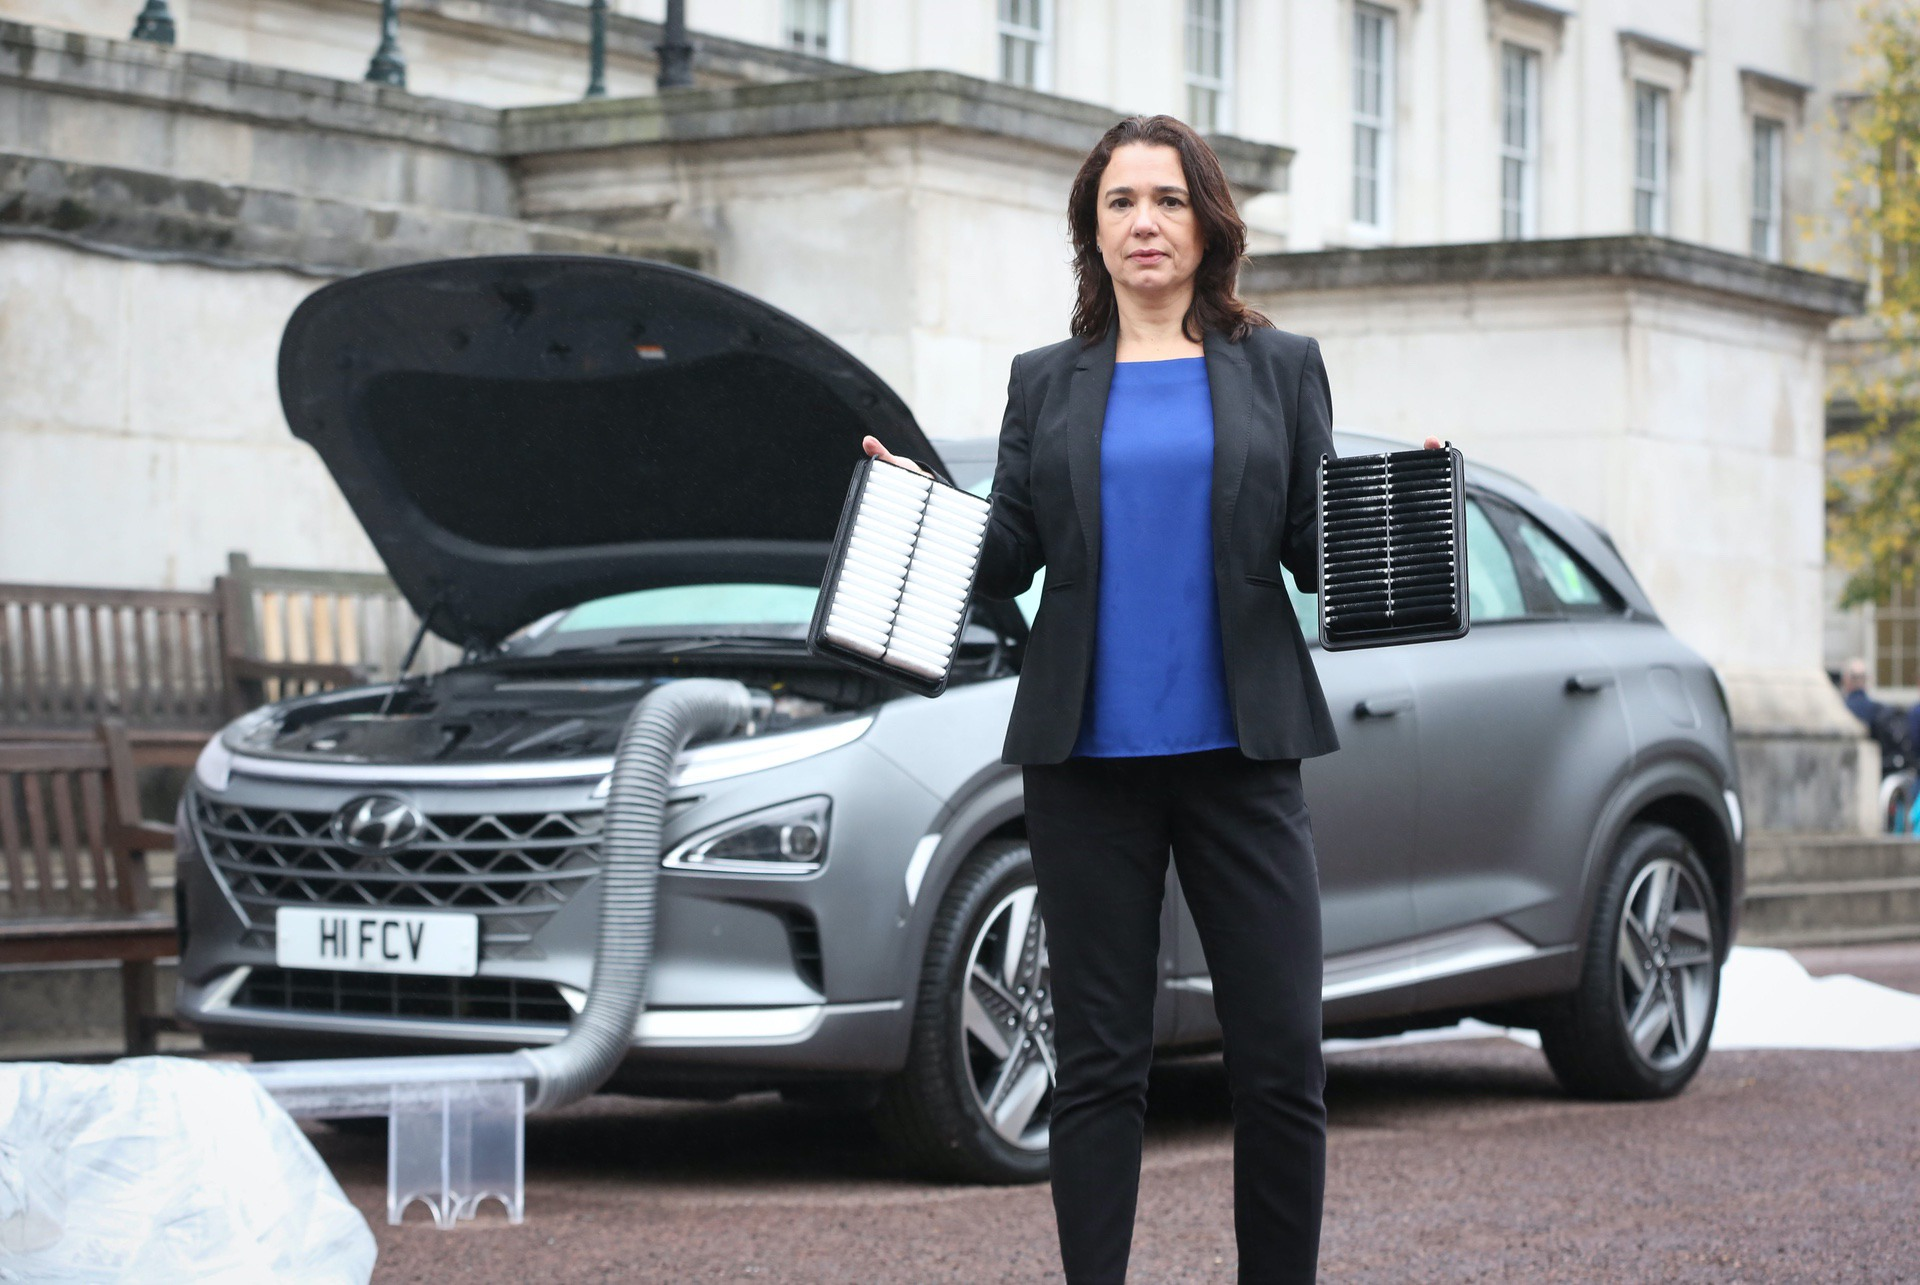 IN PHOTO - Sylvie Childs (Senior Product Manager at Hyundai EDITORIAL USE ONLY A 'clean air' demonstration, which shows Hyundai's new hydrogen fuel cell car – the NEXO, cleaning the air of pollutants takes place at UCL in London, following analysis by the university that mapped out the capital's most polluted route. PRESS ASSOCIATION Photo. Picture date: Wednesday October 17, 2018. Photo credit should read: Matt Alexander/PA Wire